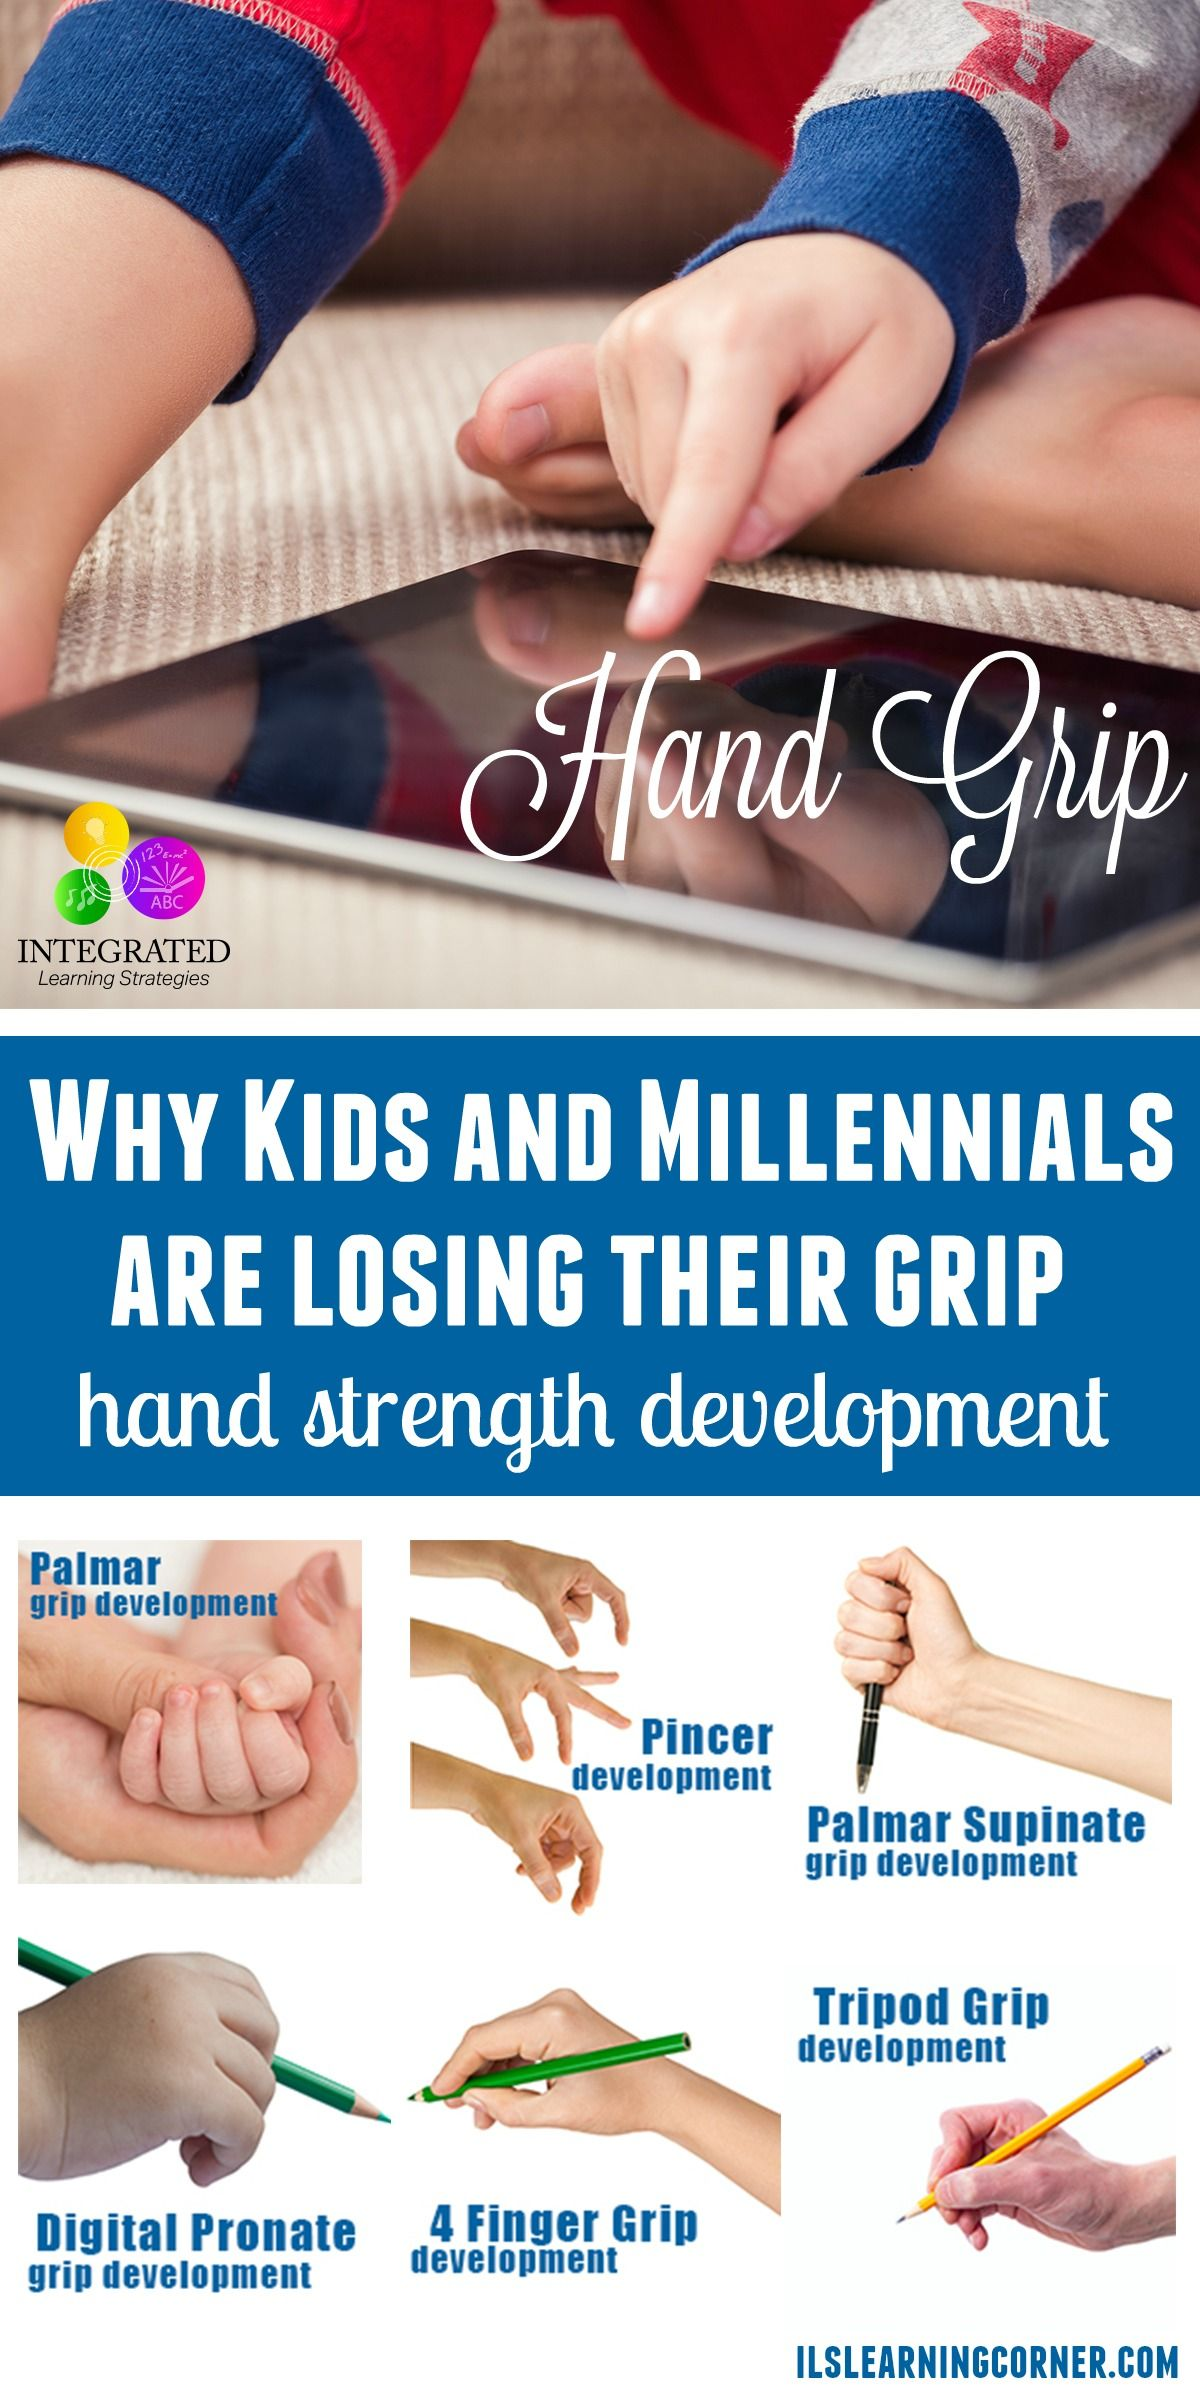 Hand Grip Weak Hands Weak Body Why Kids And Millennials Are Losing Their Grip